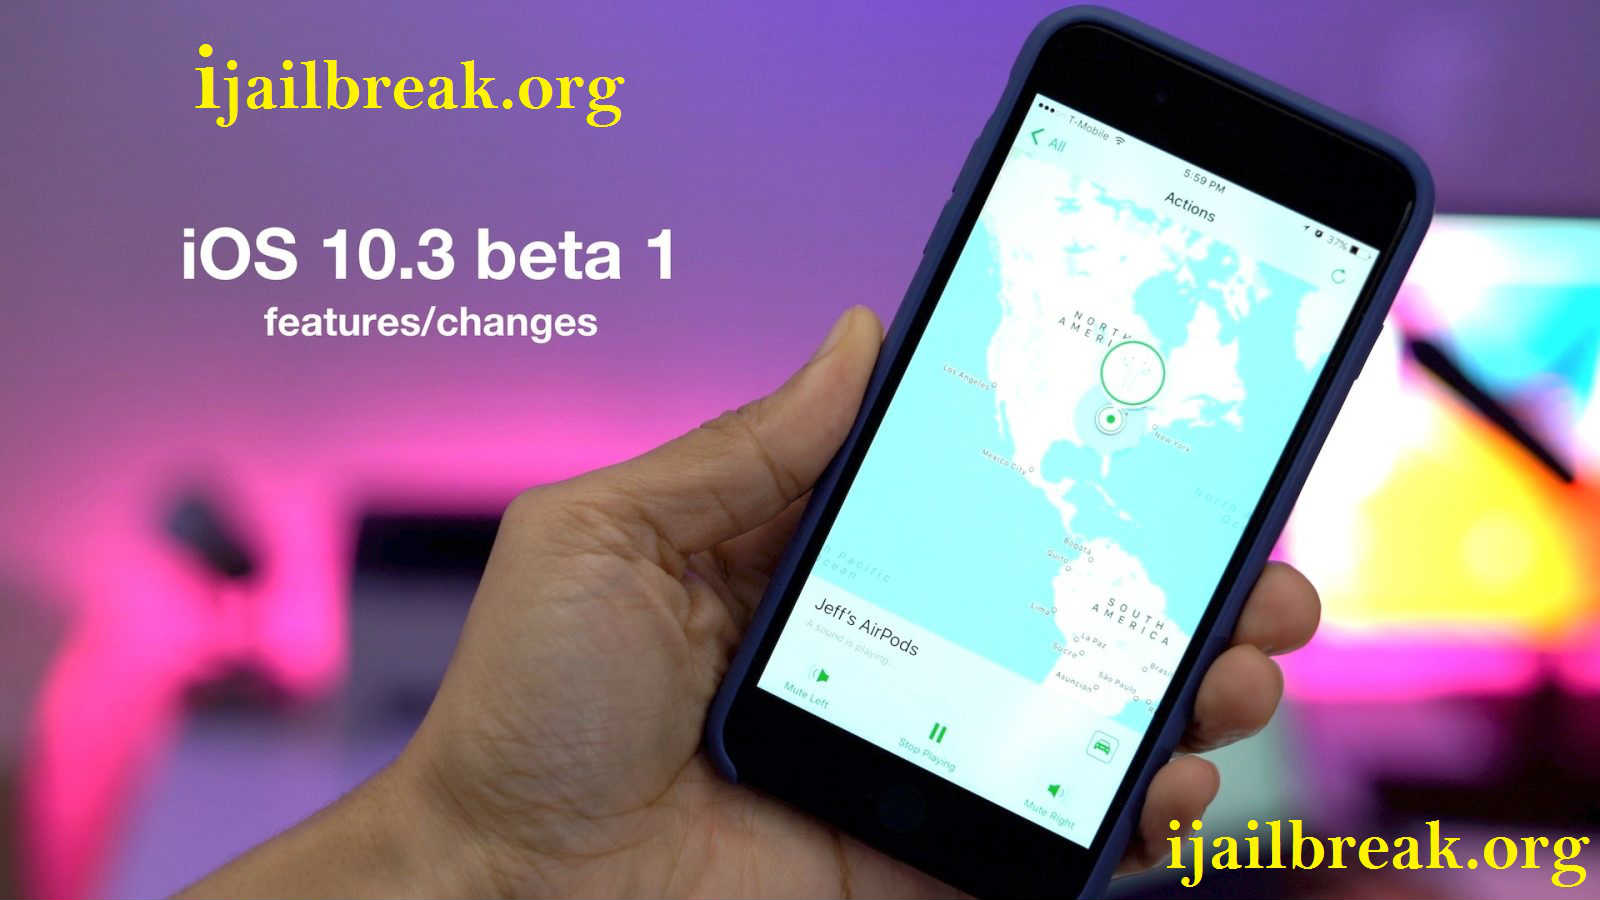 jailbreak ios 10.2.1 and 10.3 beta